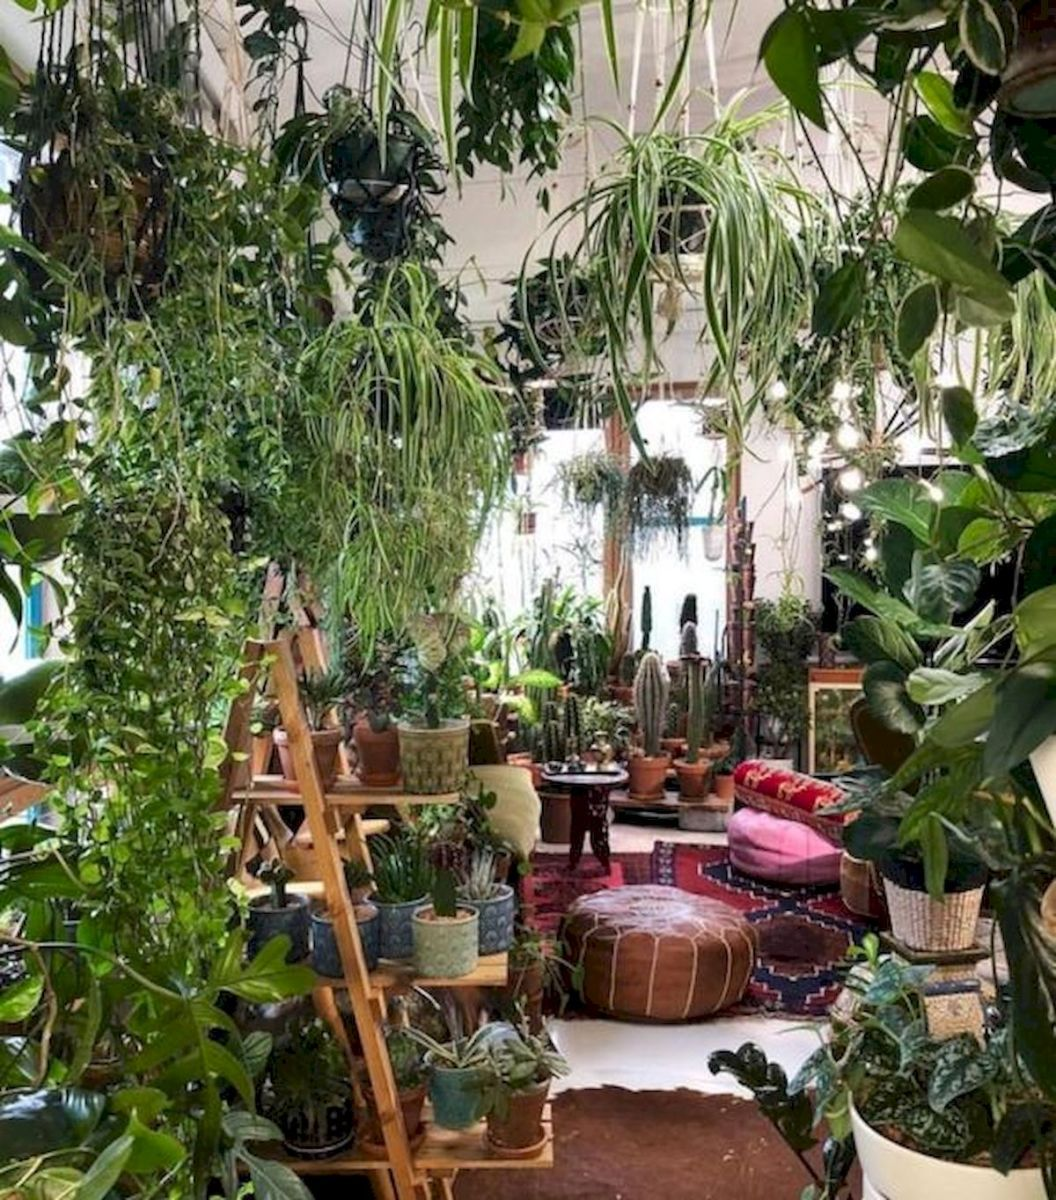 40 Awesome Indoor Garden Design Ideas That Look Beautiful (40)